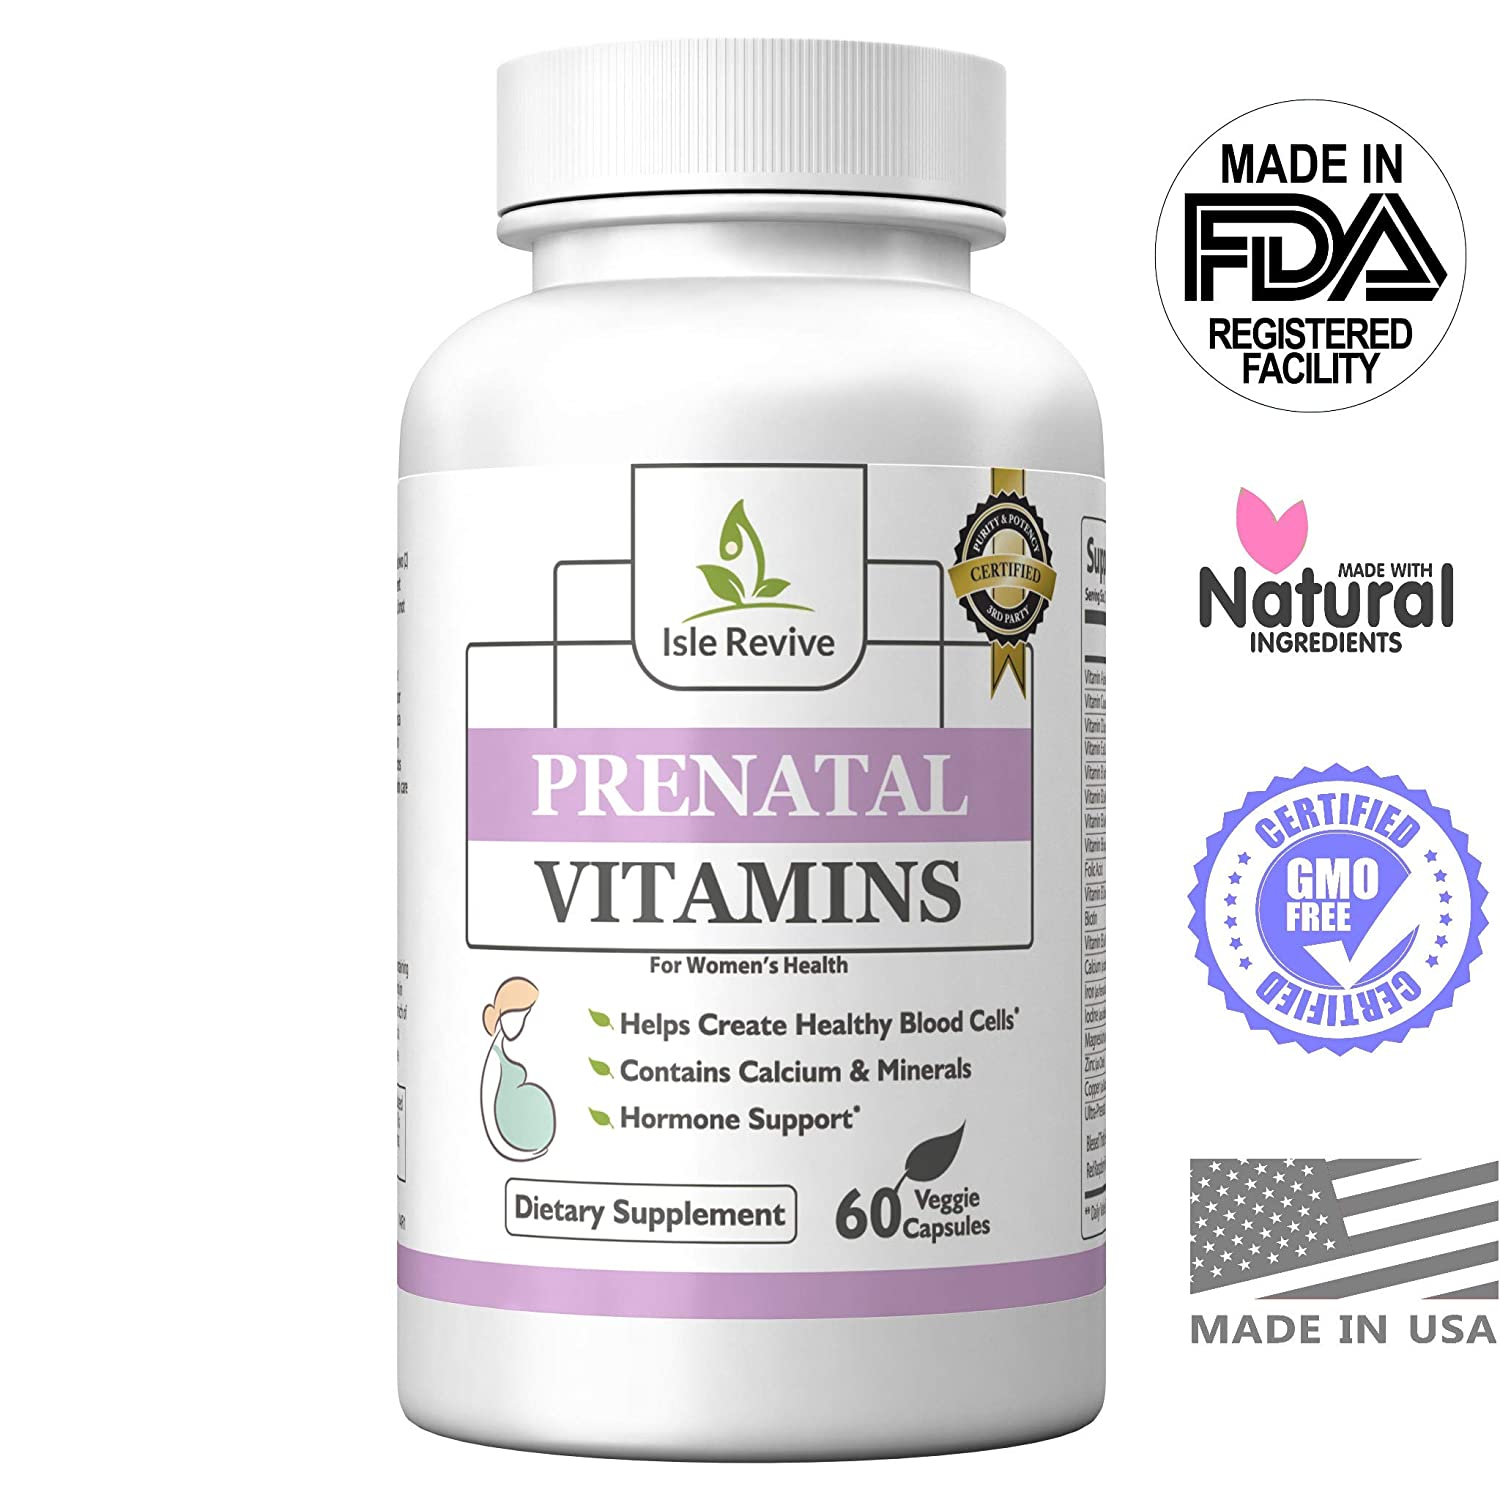 Amazon.com: Prenatal Vitamins One a Day Supplement High in Folic Acid - Balanced Multivitamin with Calcium, Iron, Vitamin B Complex Boosts Energy, ...